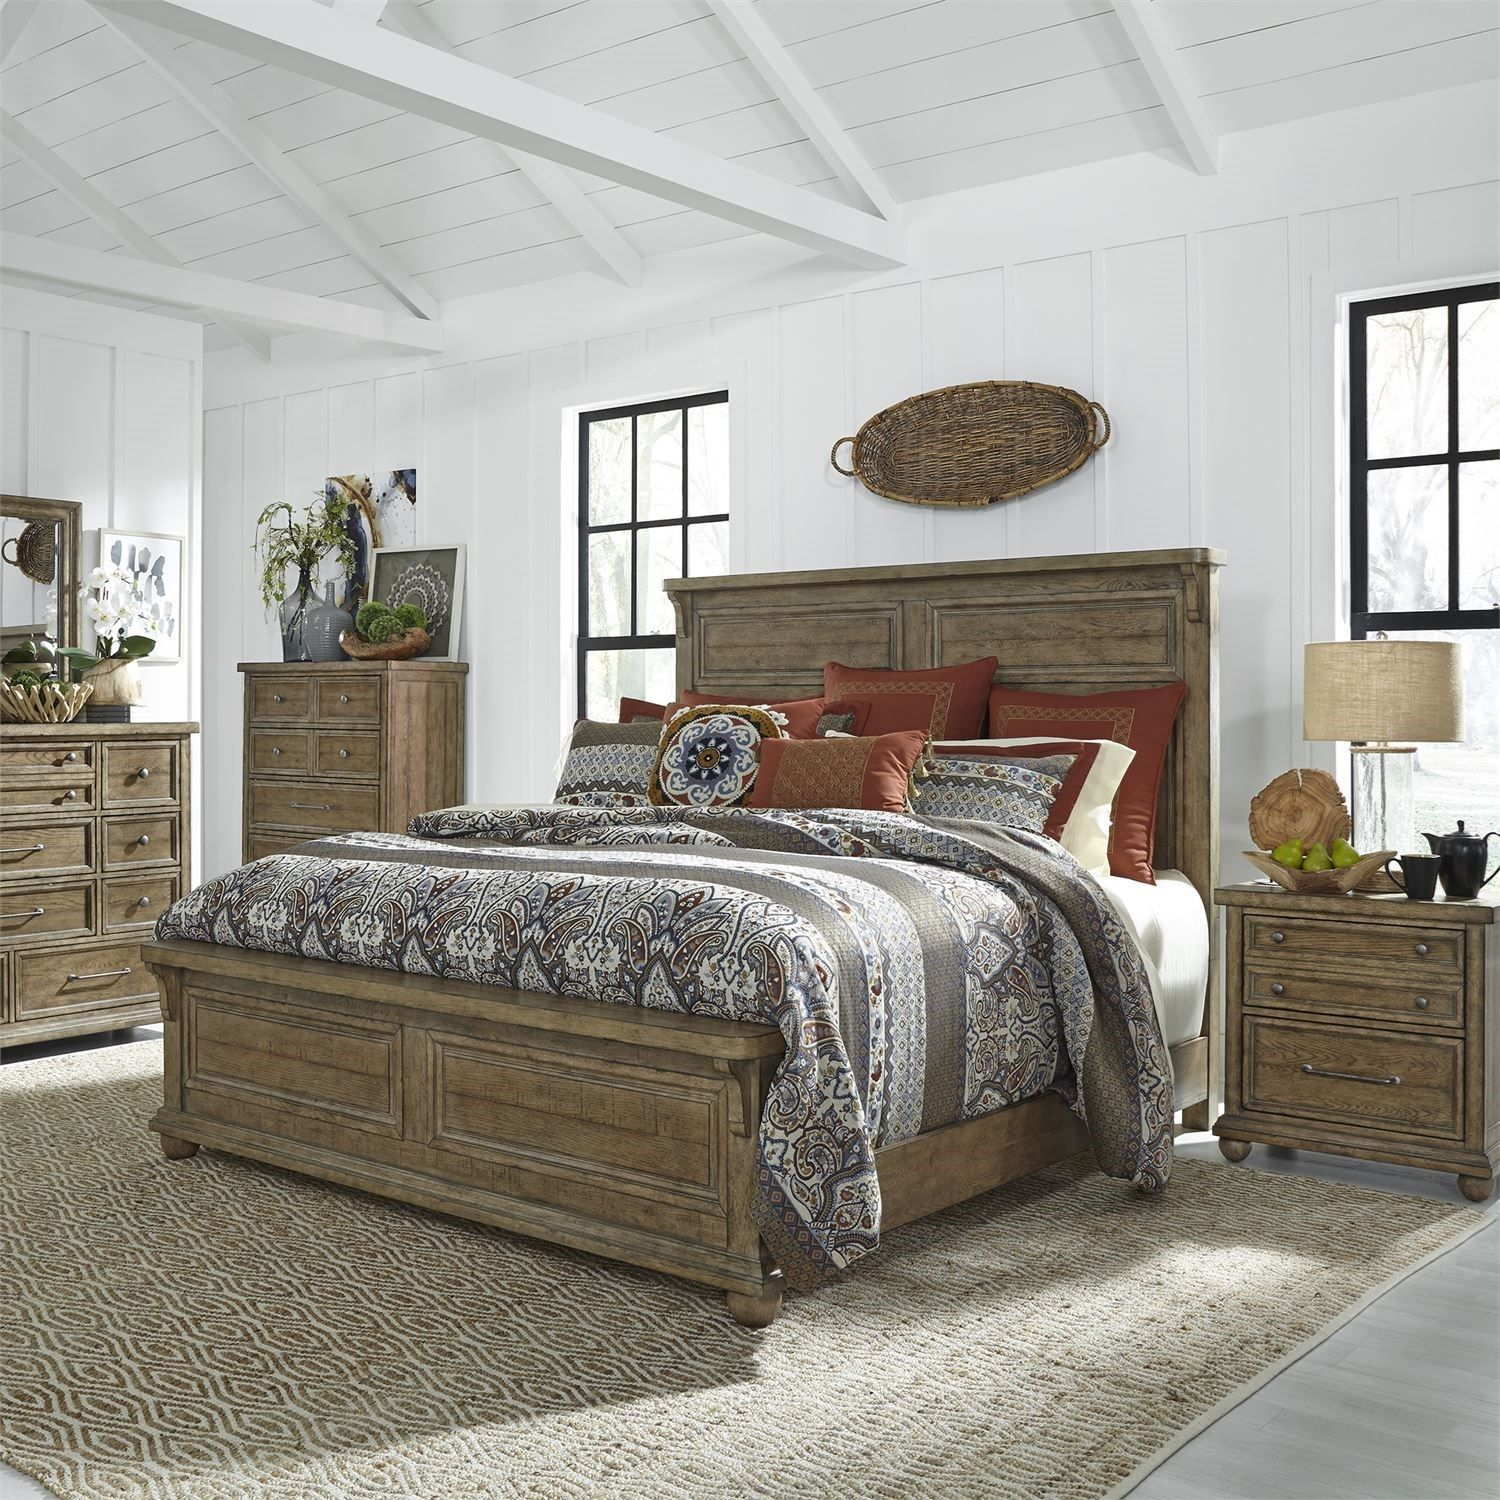 Harvest Home King Bedroom Group By Liberty Furniture With Images